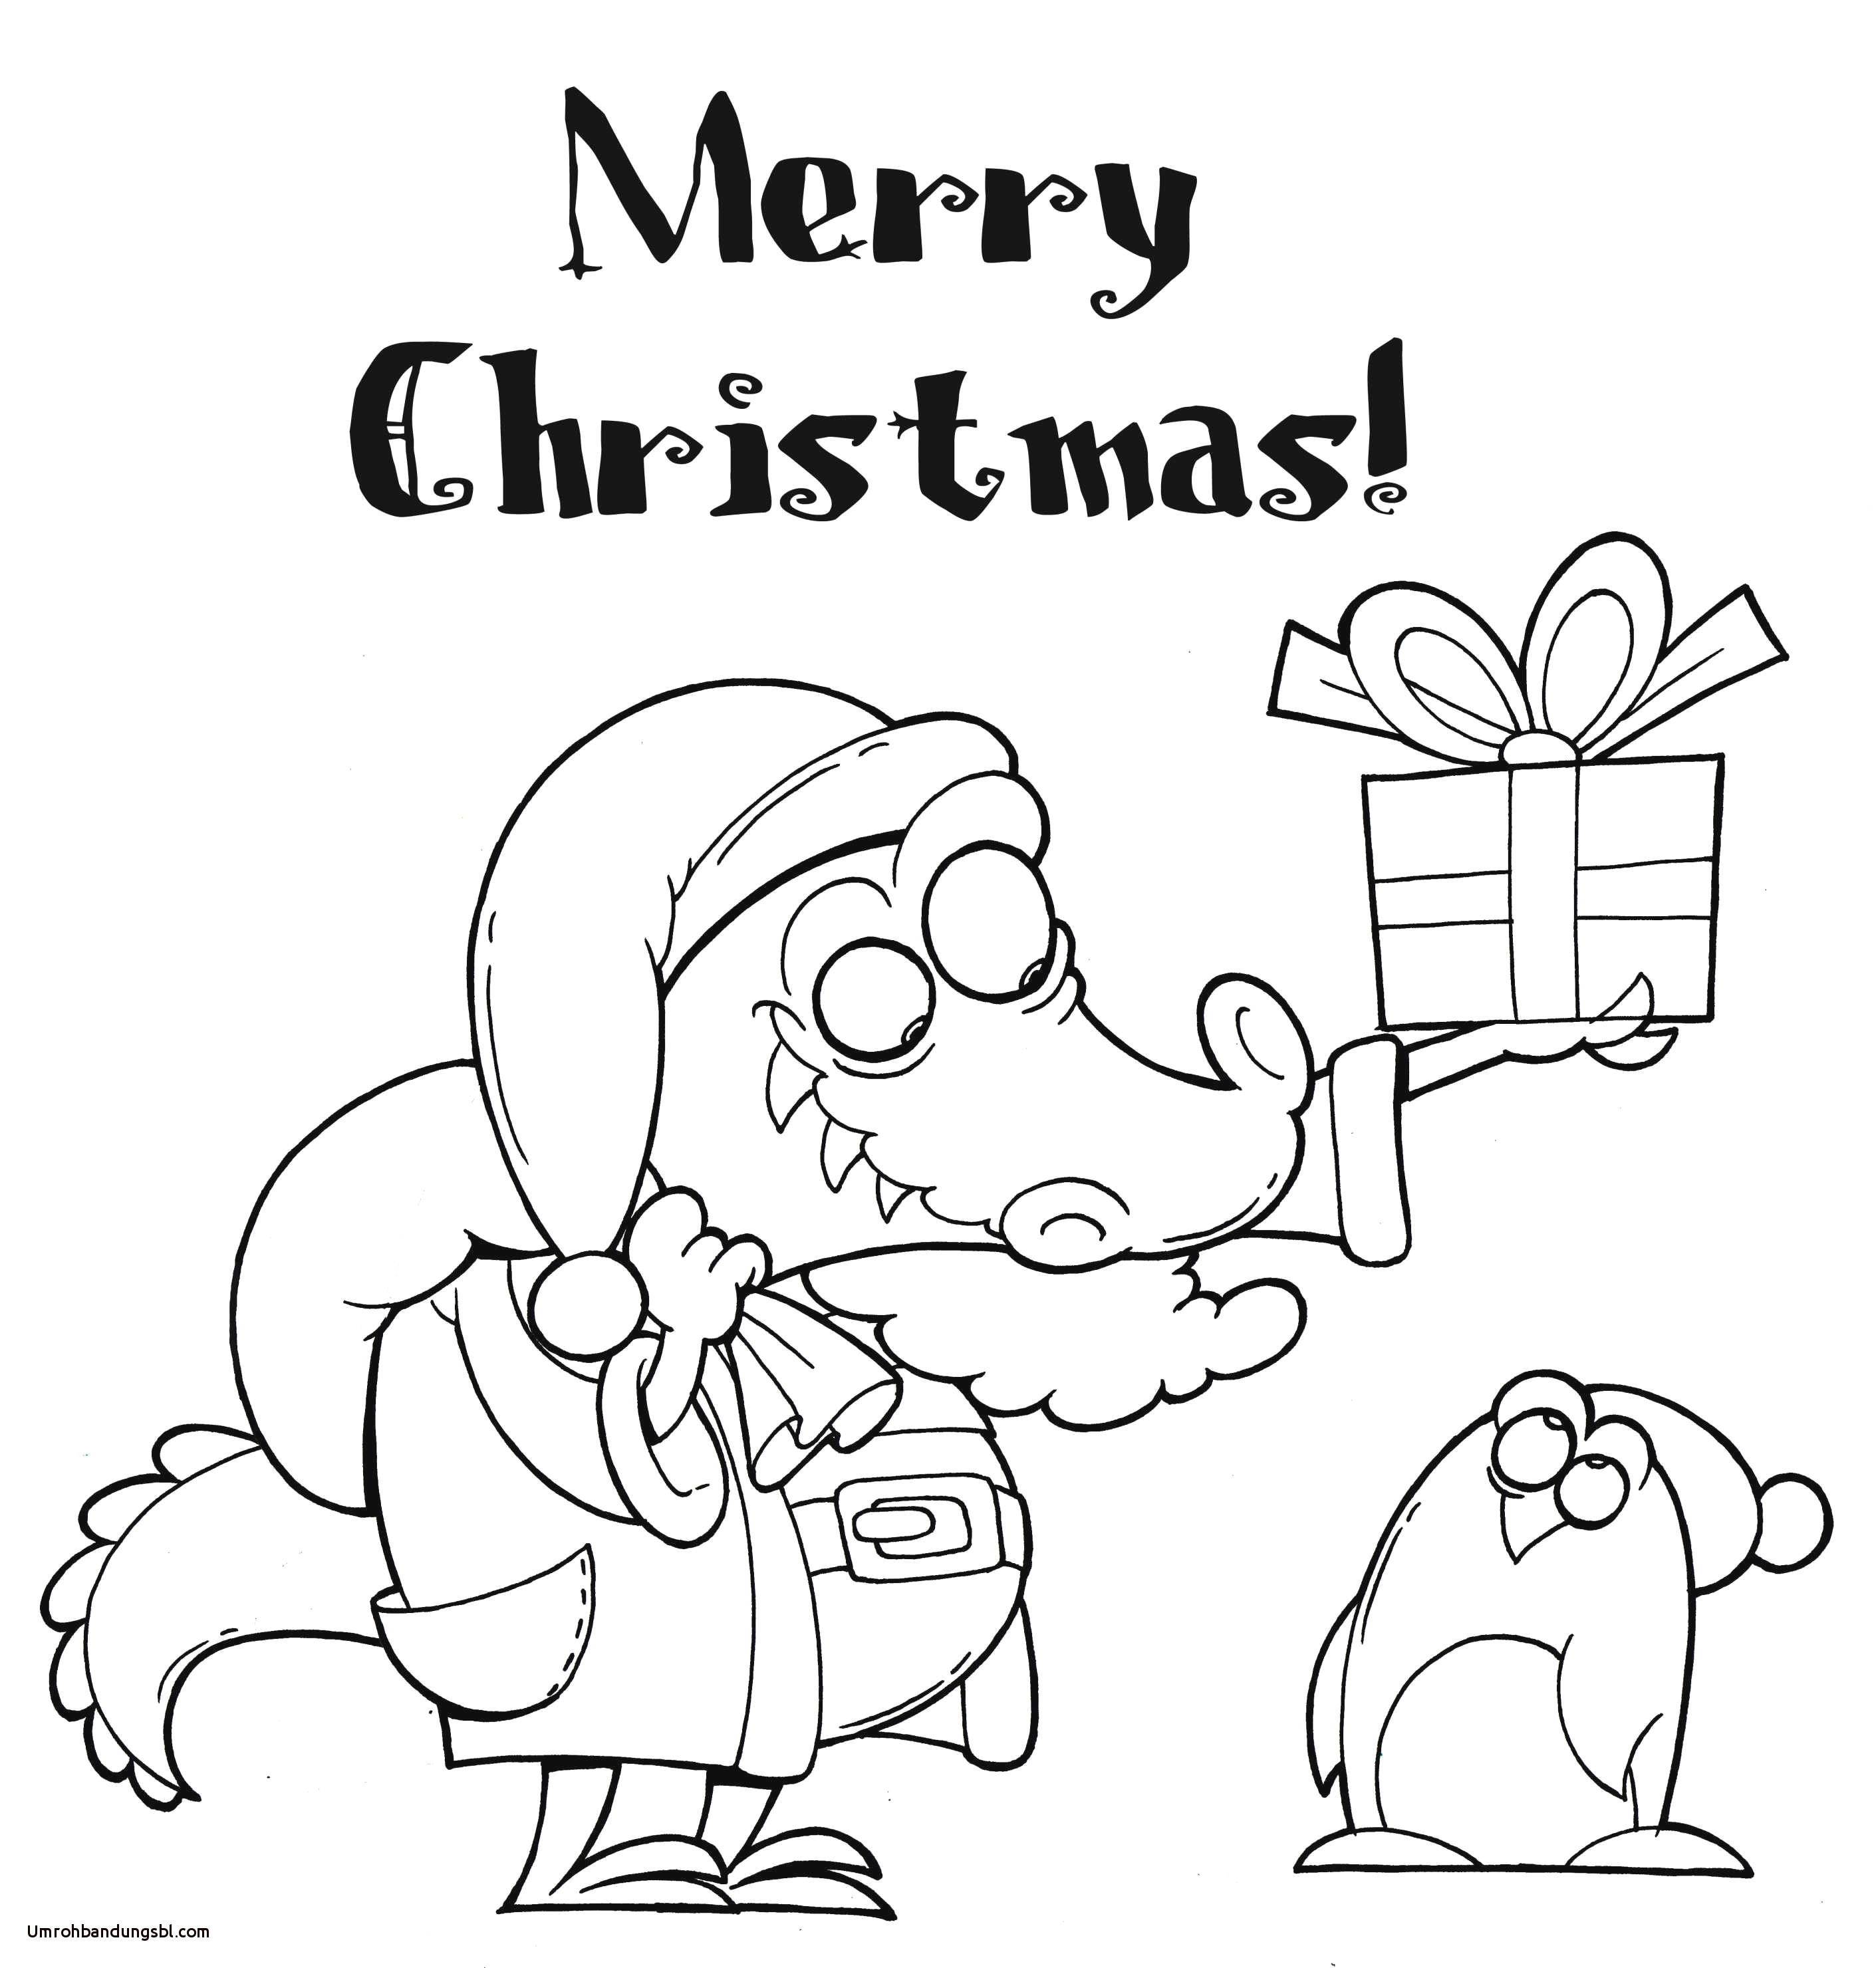 mlp resume example-Merry Christmas Coloring Pages that Say merry Christmas My Little 7-a